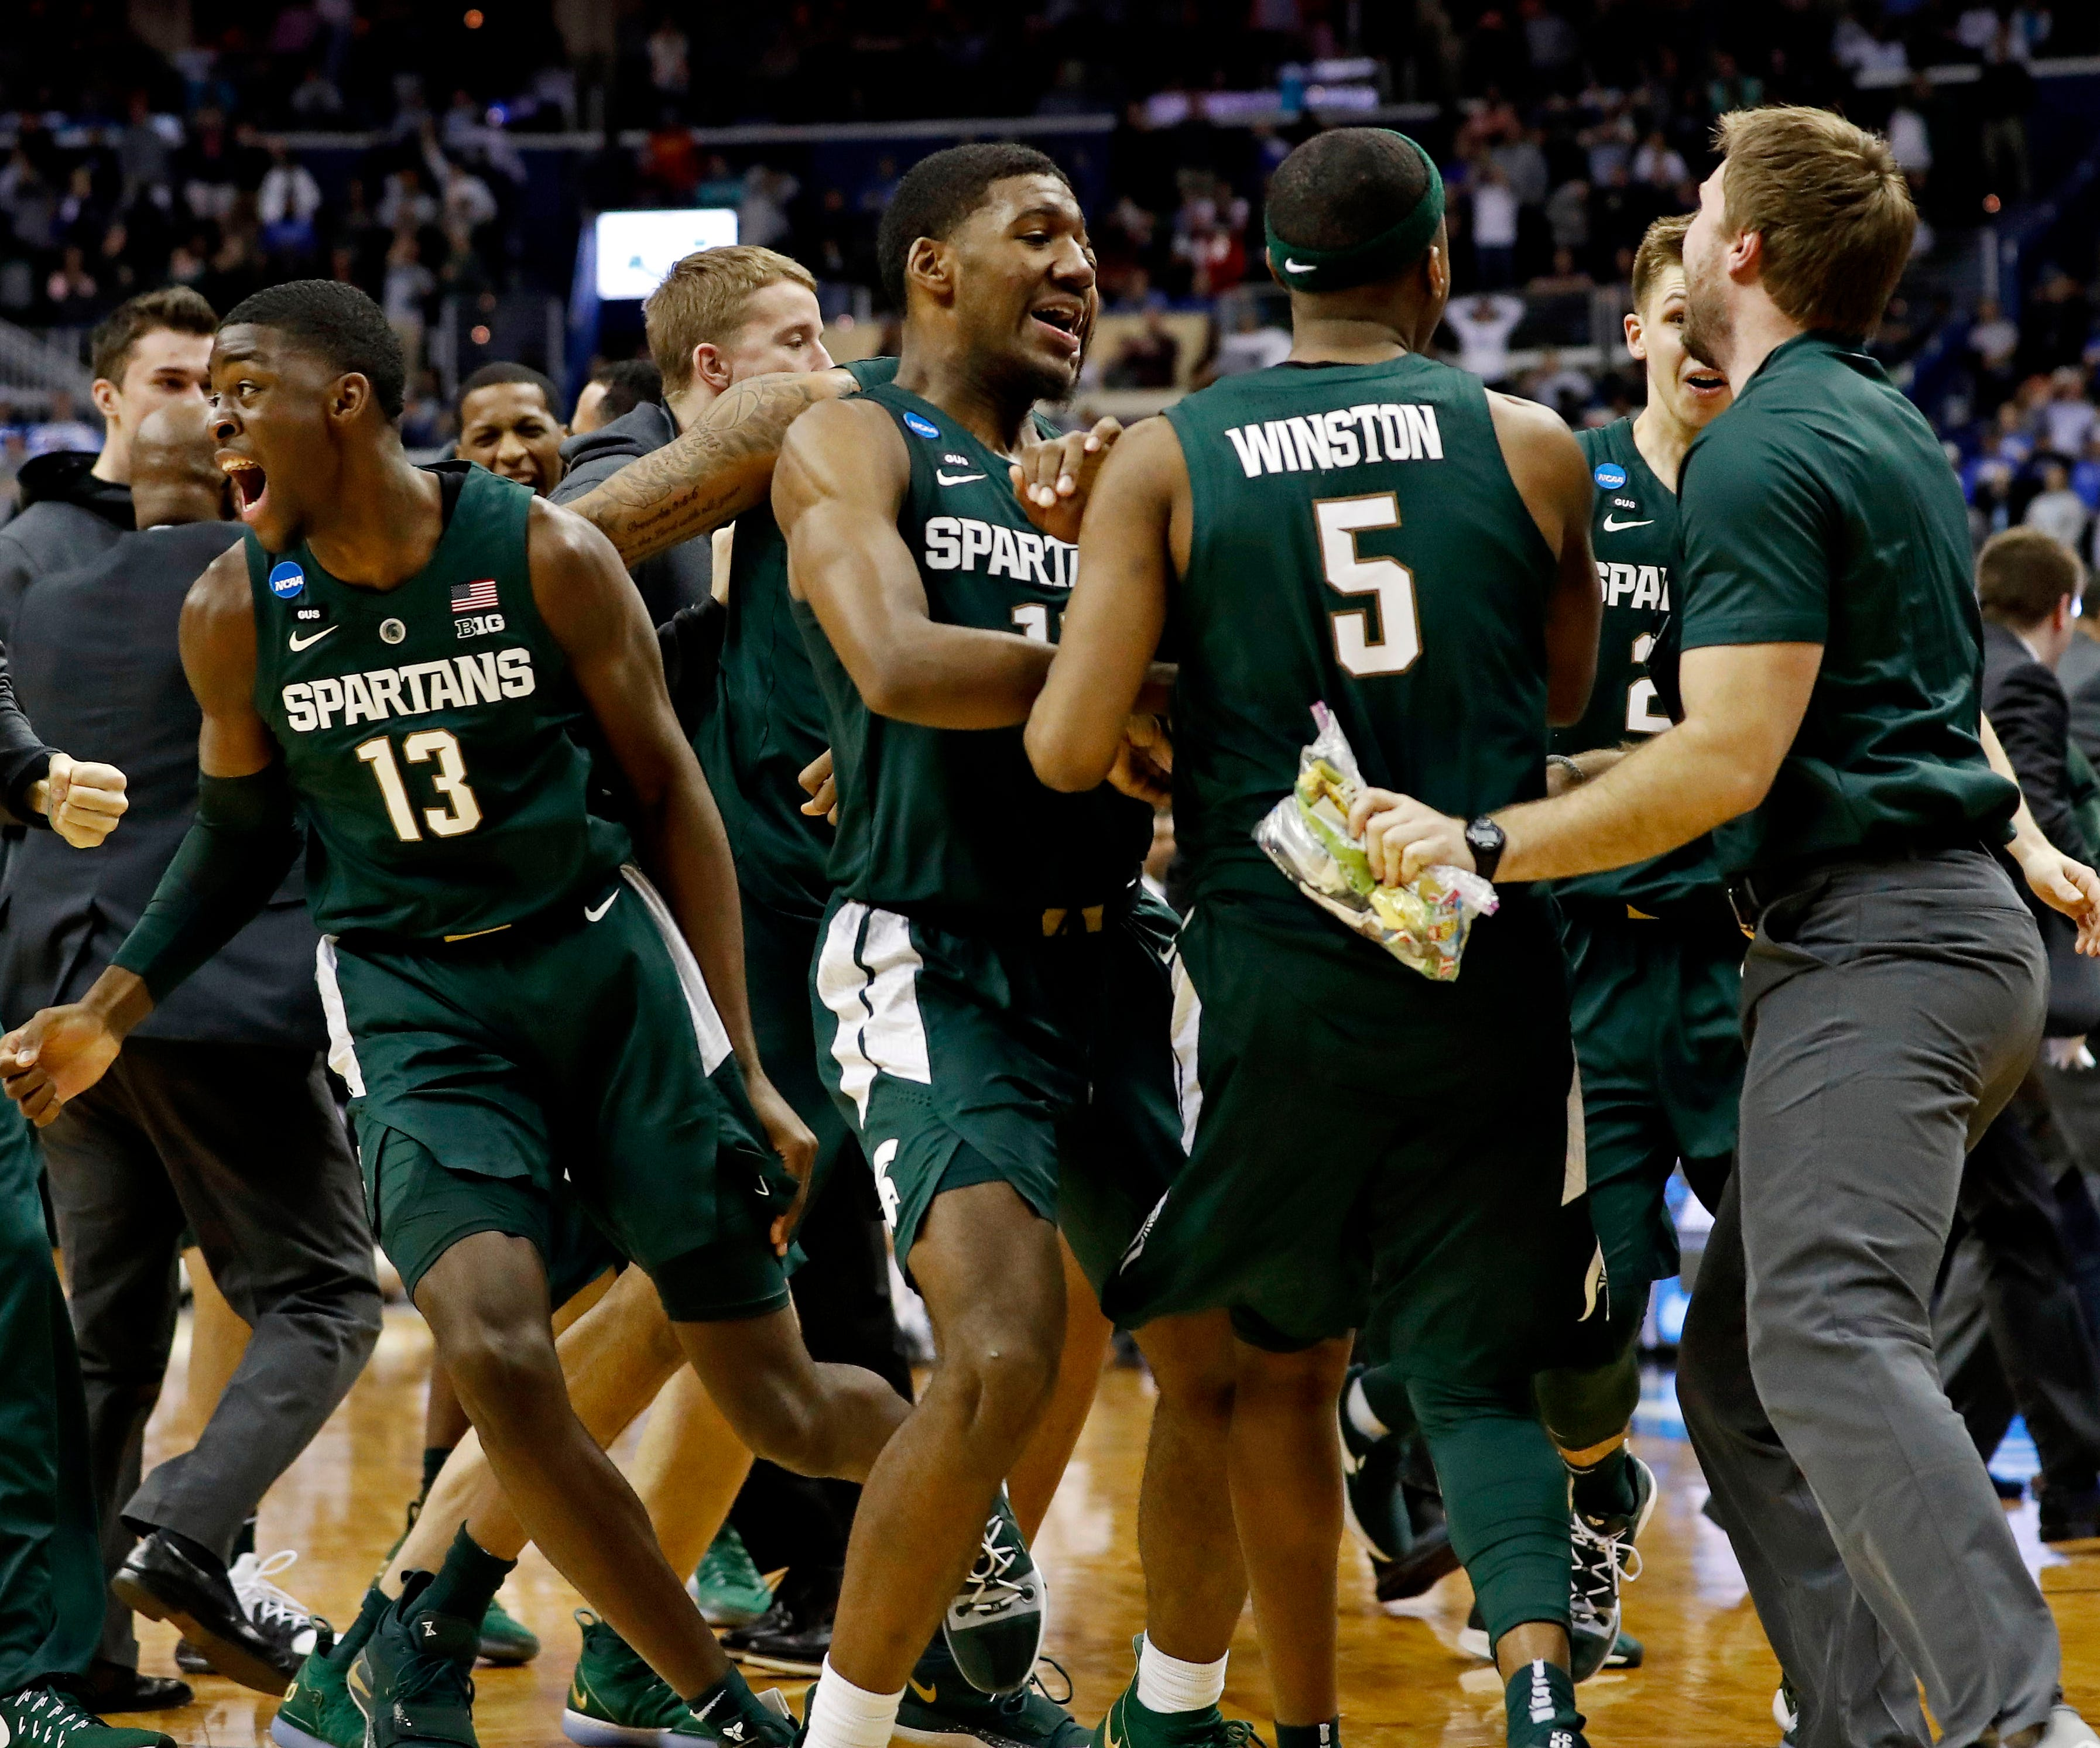 Michigan State players celebrate after beating Duke in the East Regional championship game of the 2019 NCAA tournament.